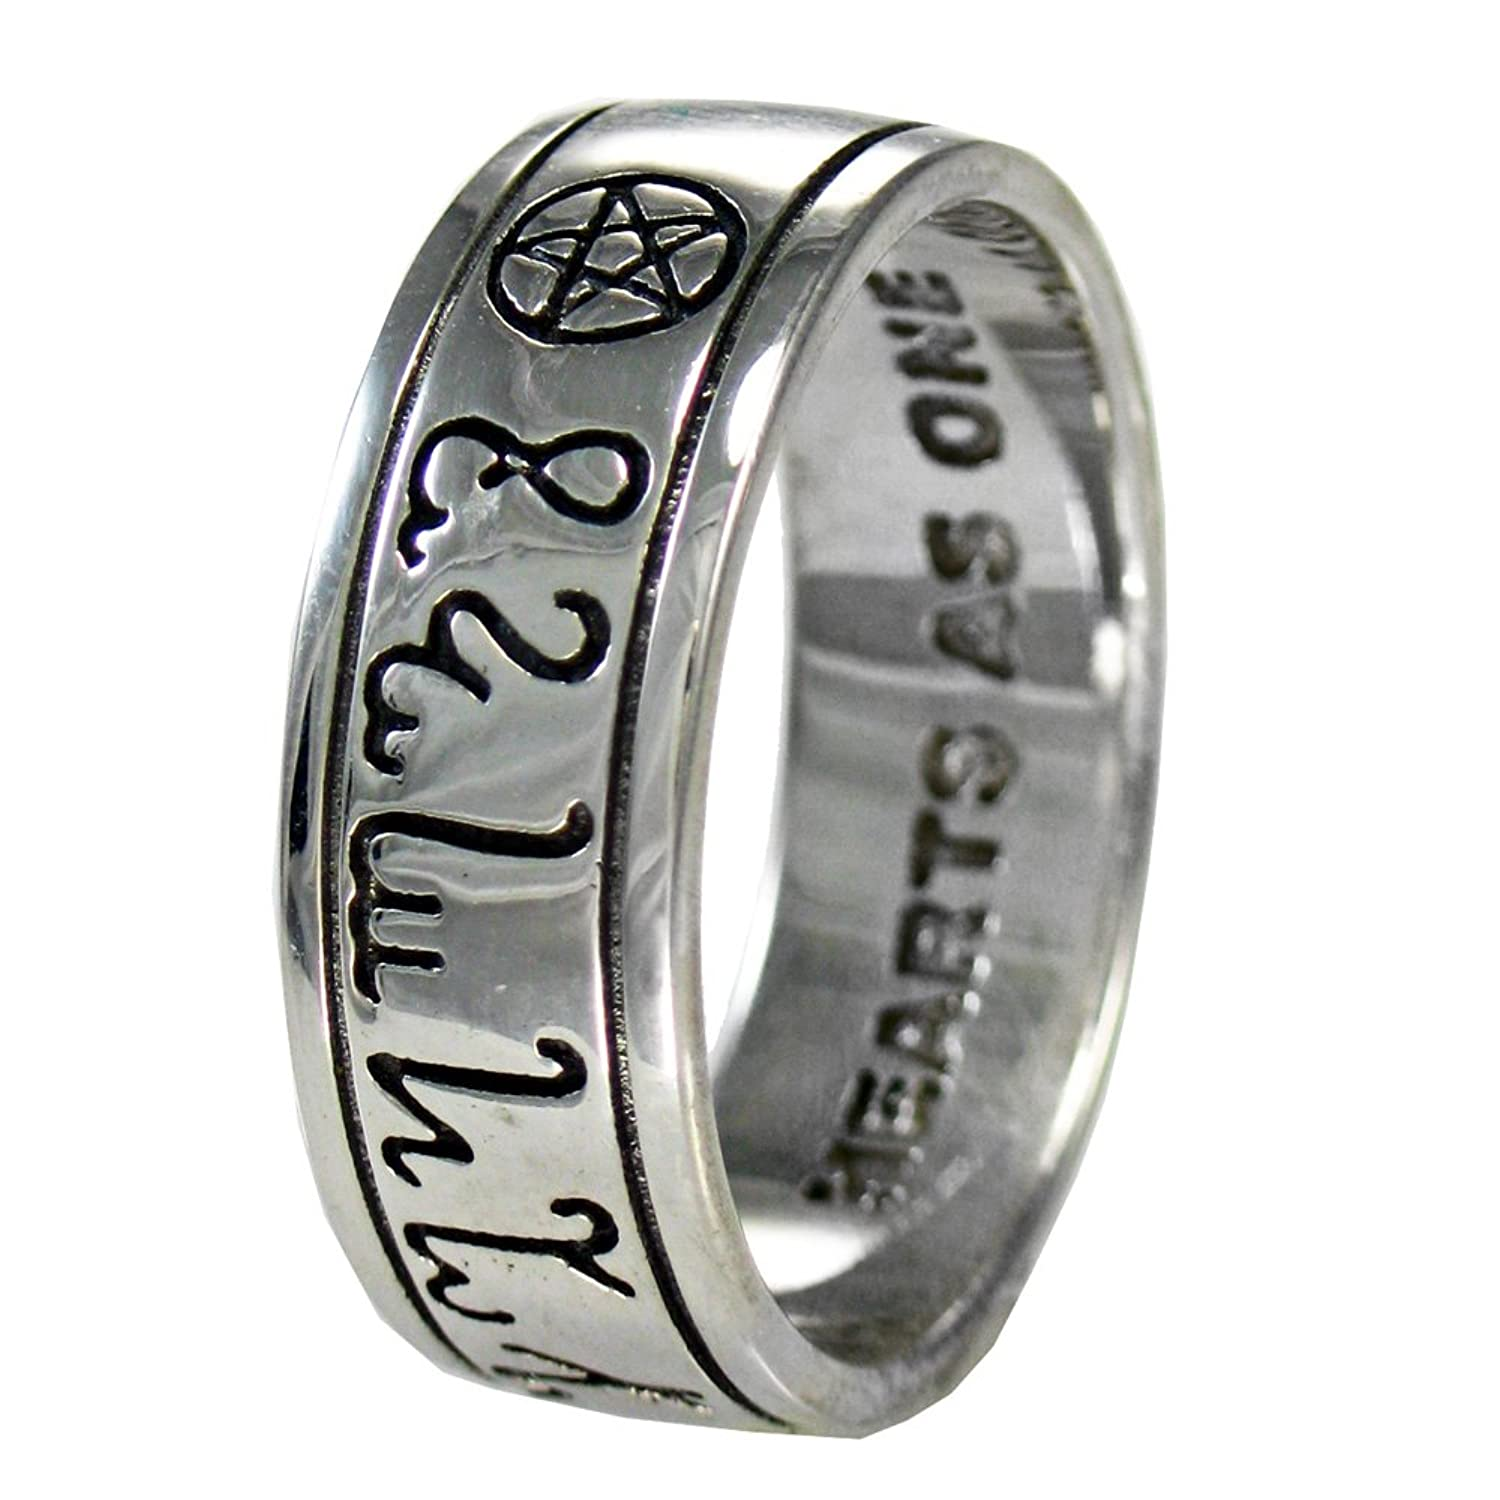 amazoncom sterling silver handfasting theban pentacle wedding ring size 4 15 jewelry